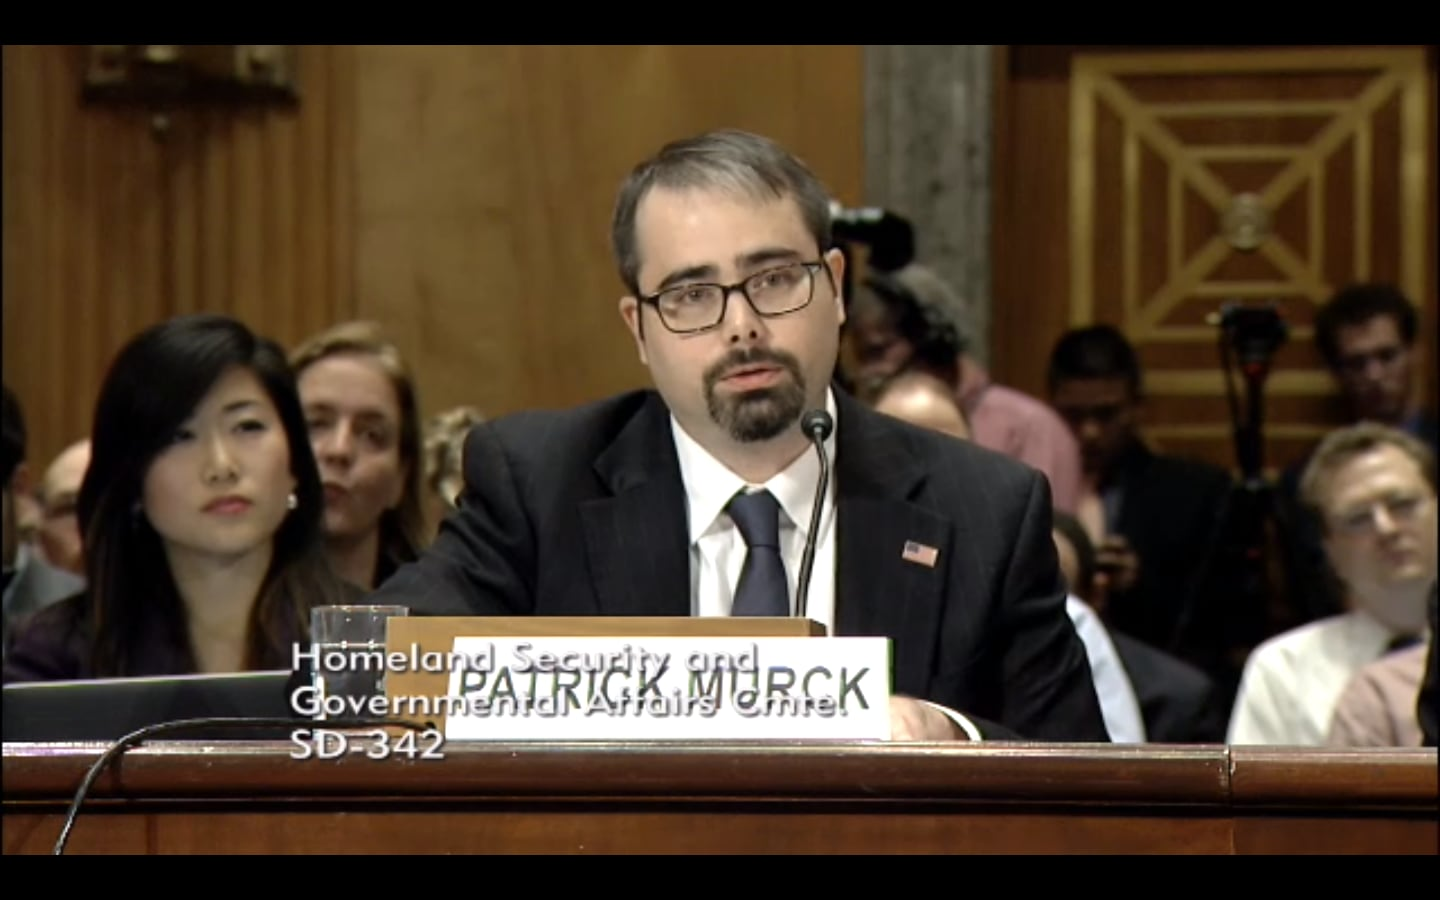 The Bitcoin Foundation's Patrick Murck testifies before the Senate Homeland Security and Government Affairs Committee (US Senate)